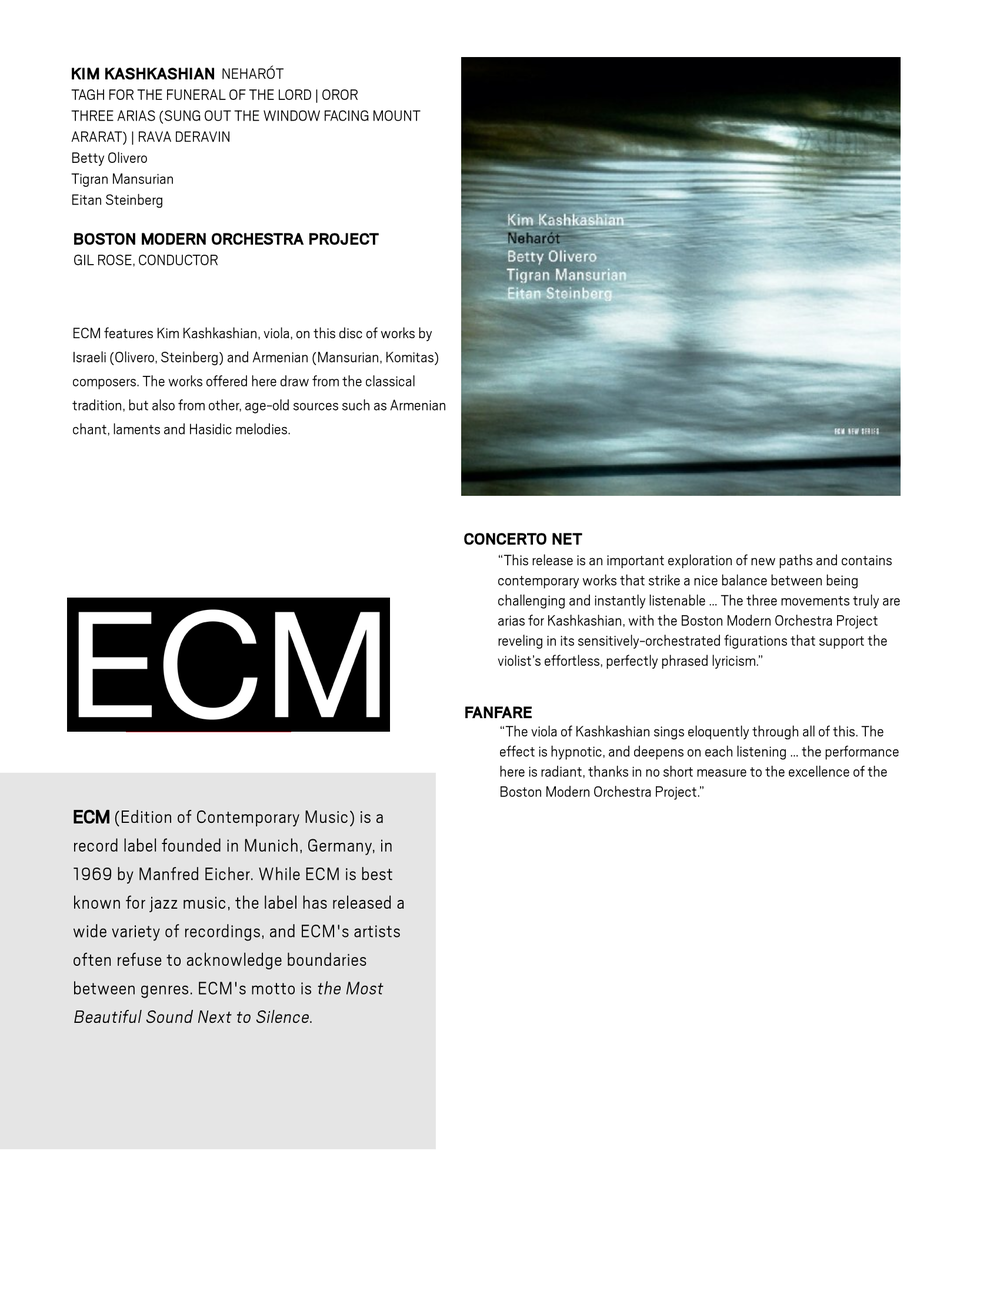 Kashkashian - ECM 2065 one-sheet.png